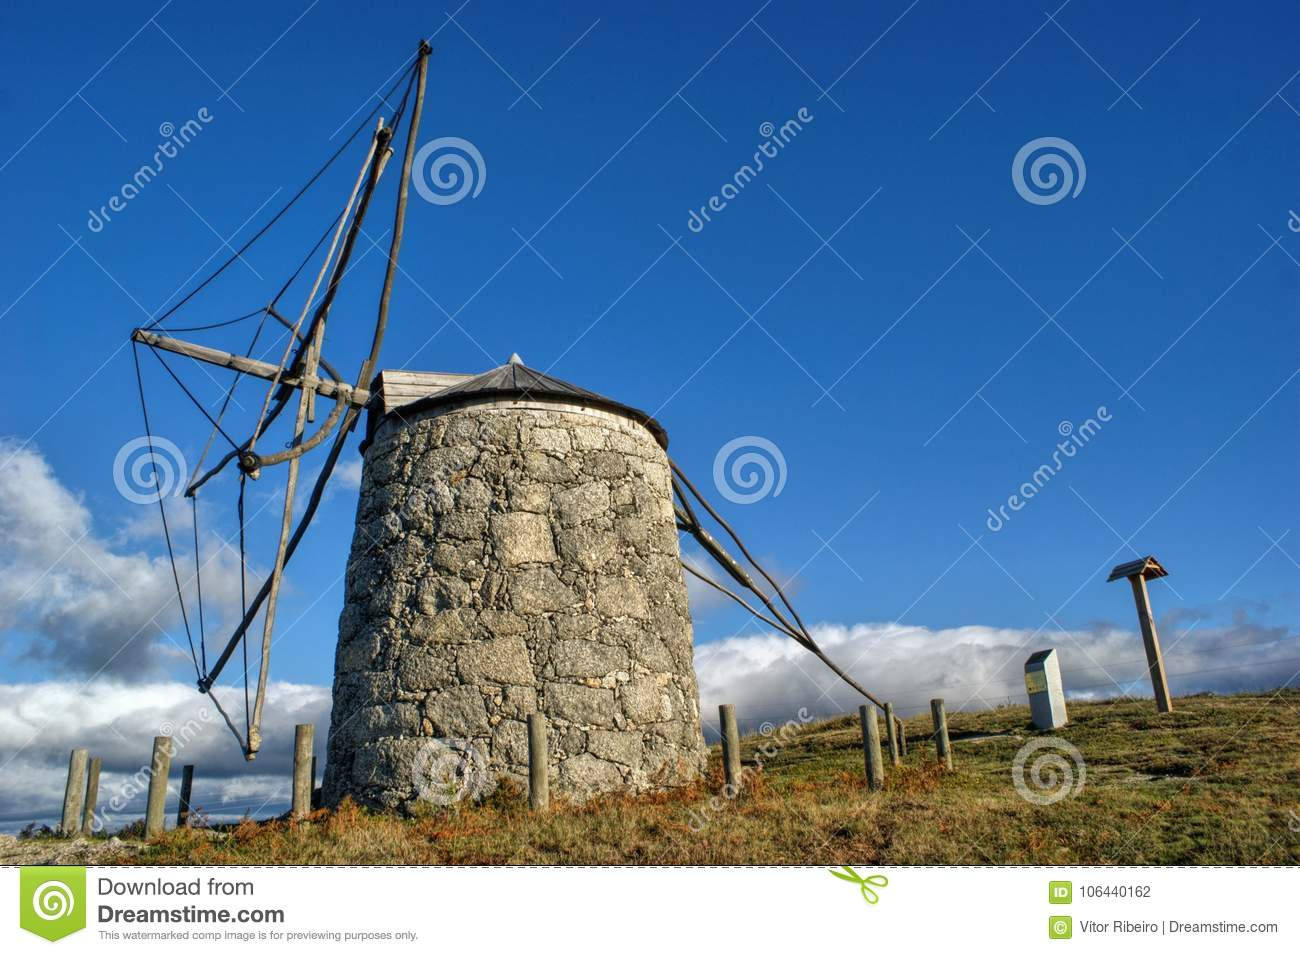 Old windmill of Aboim in Fafe